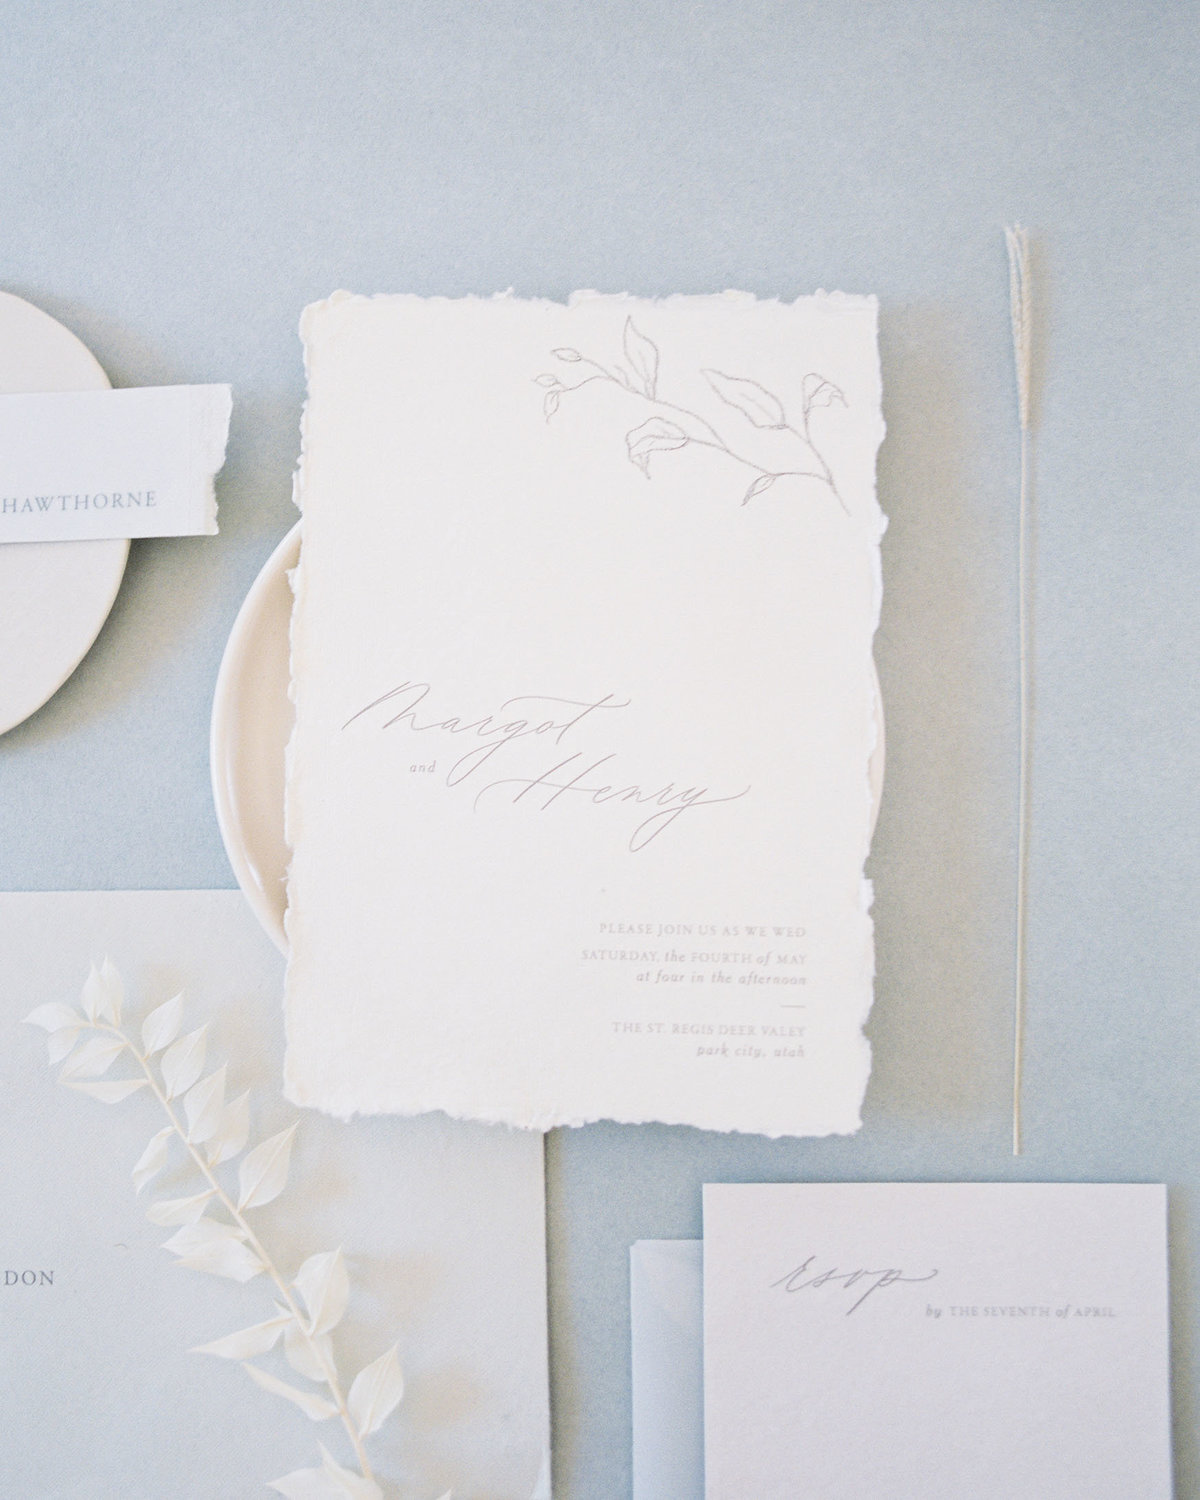 Dominique Alba Minimalist wedding invitation collection Flora invitation card with floral sketches